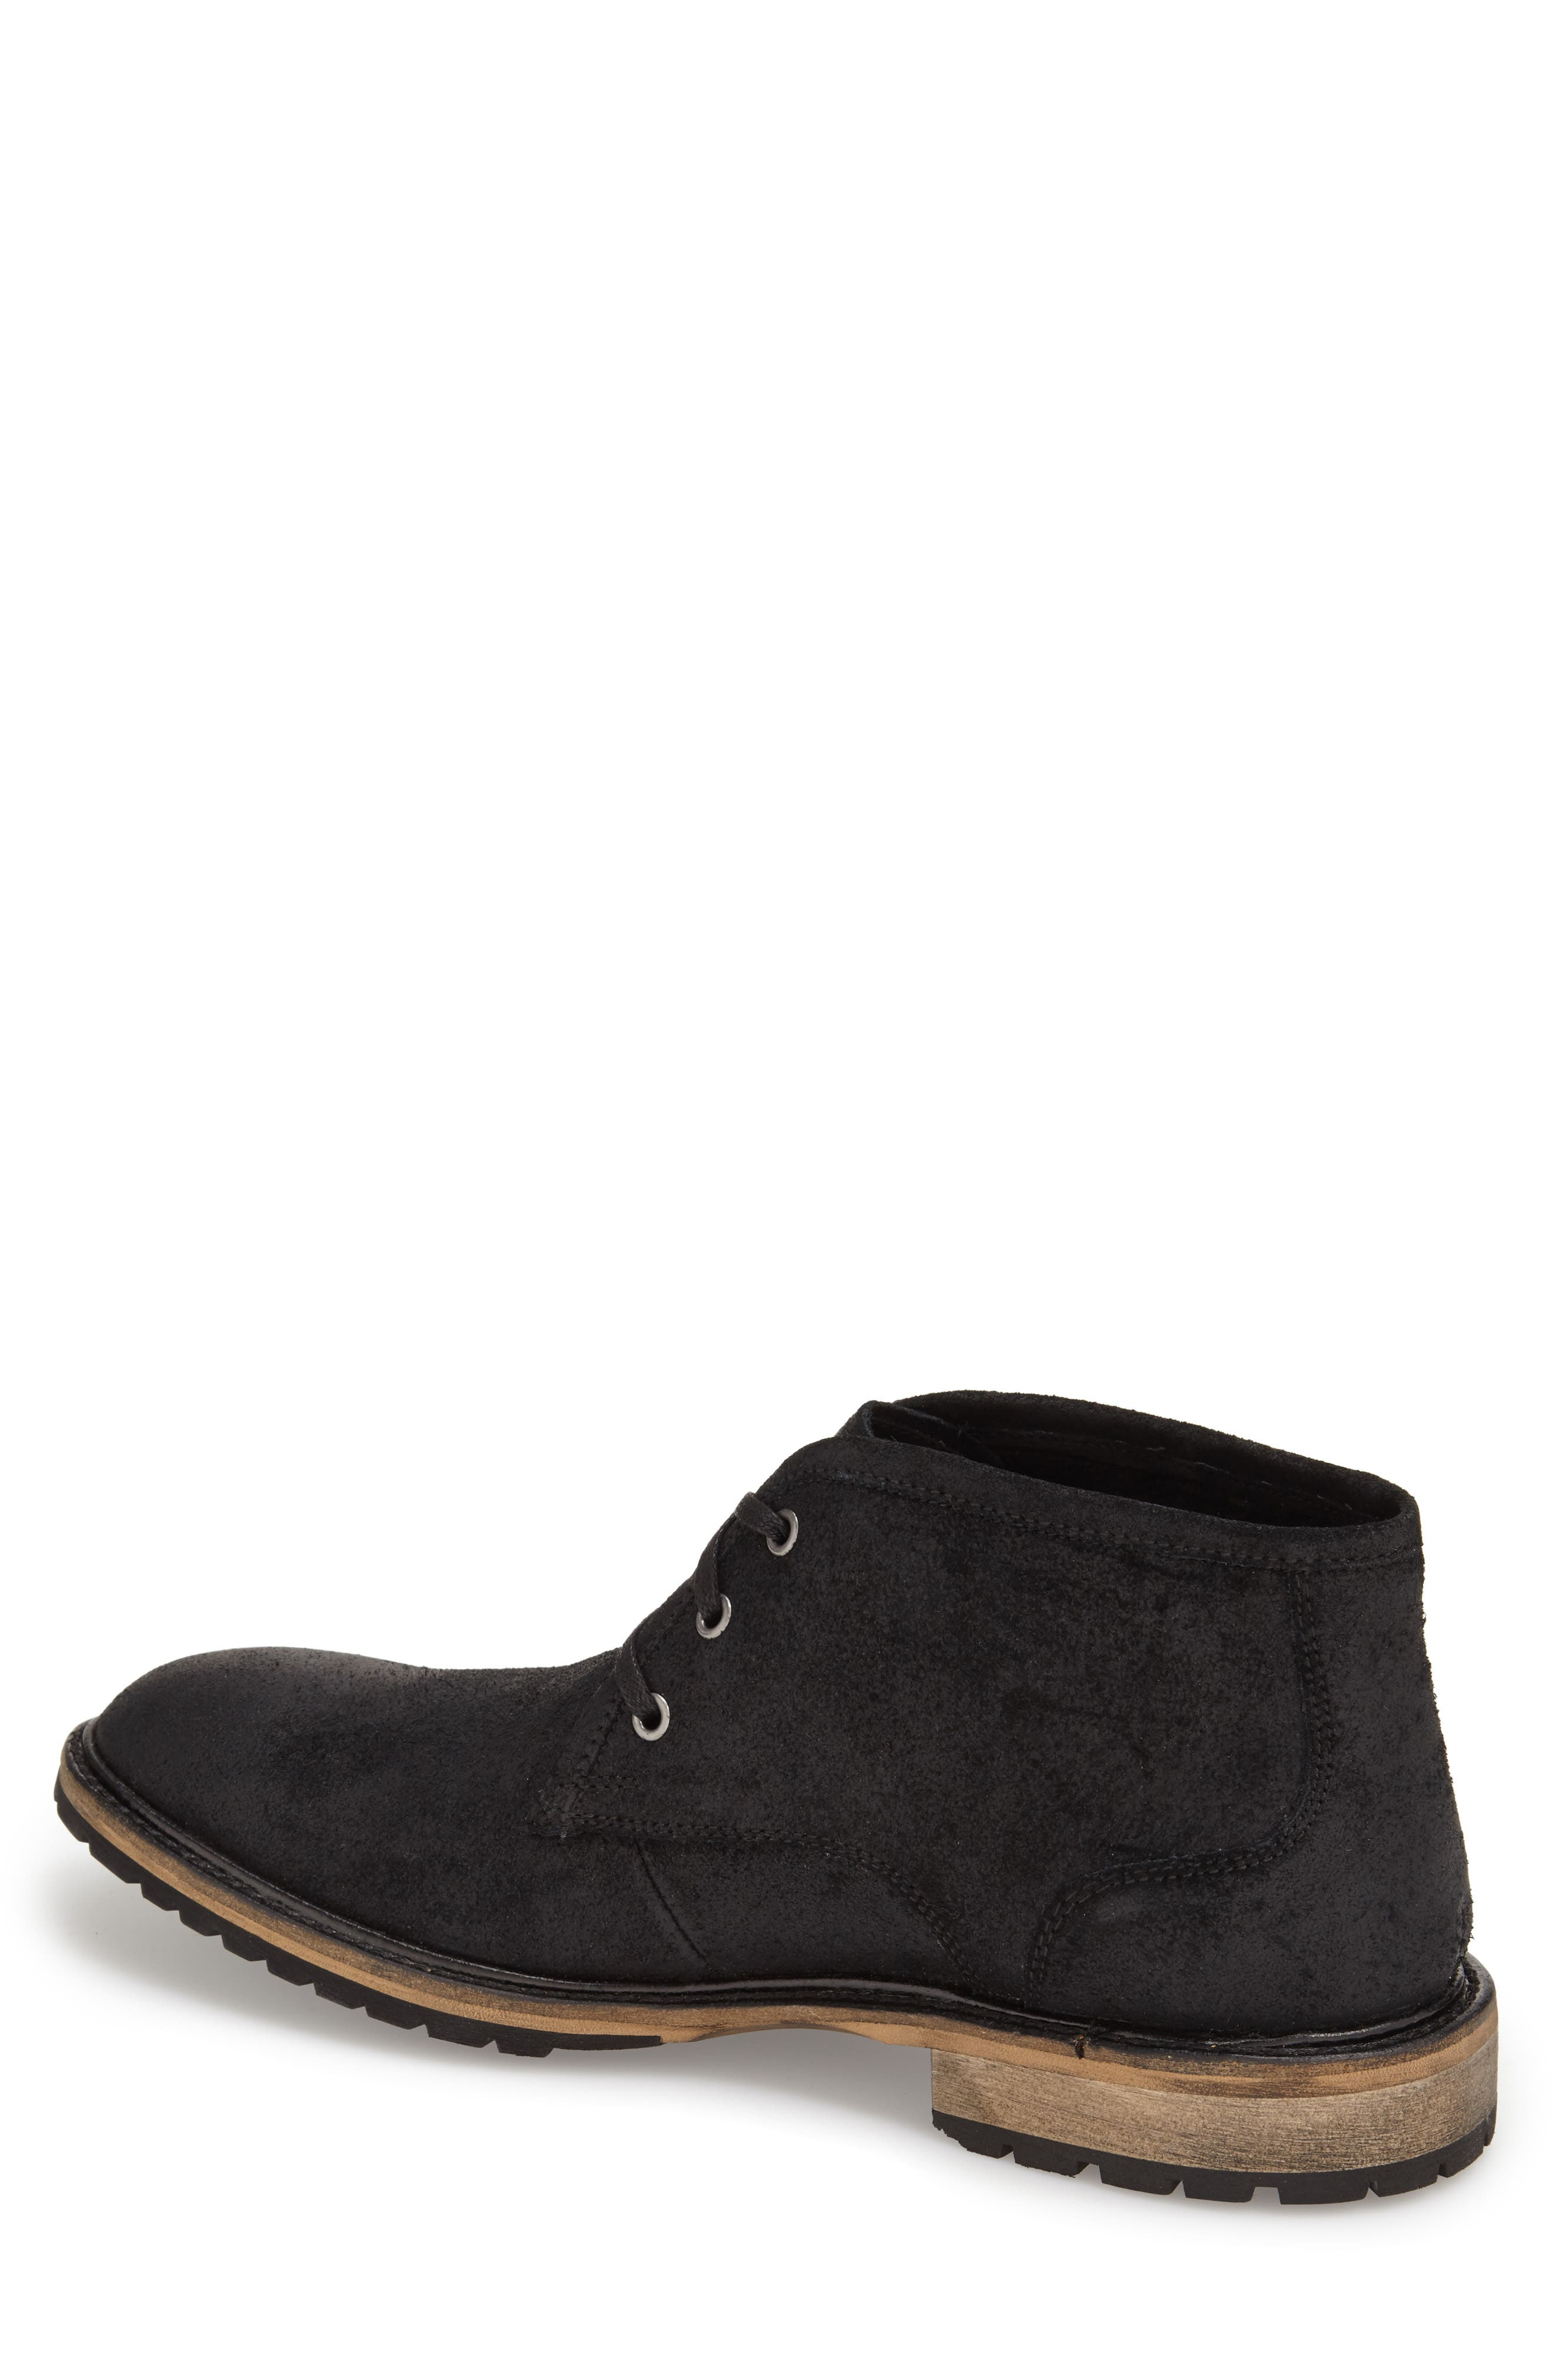 Woodside Chukka Boot,                         Main,                         color, BLACK/ DEEP NATURAL SUEDE